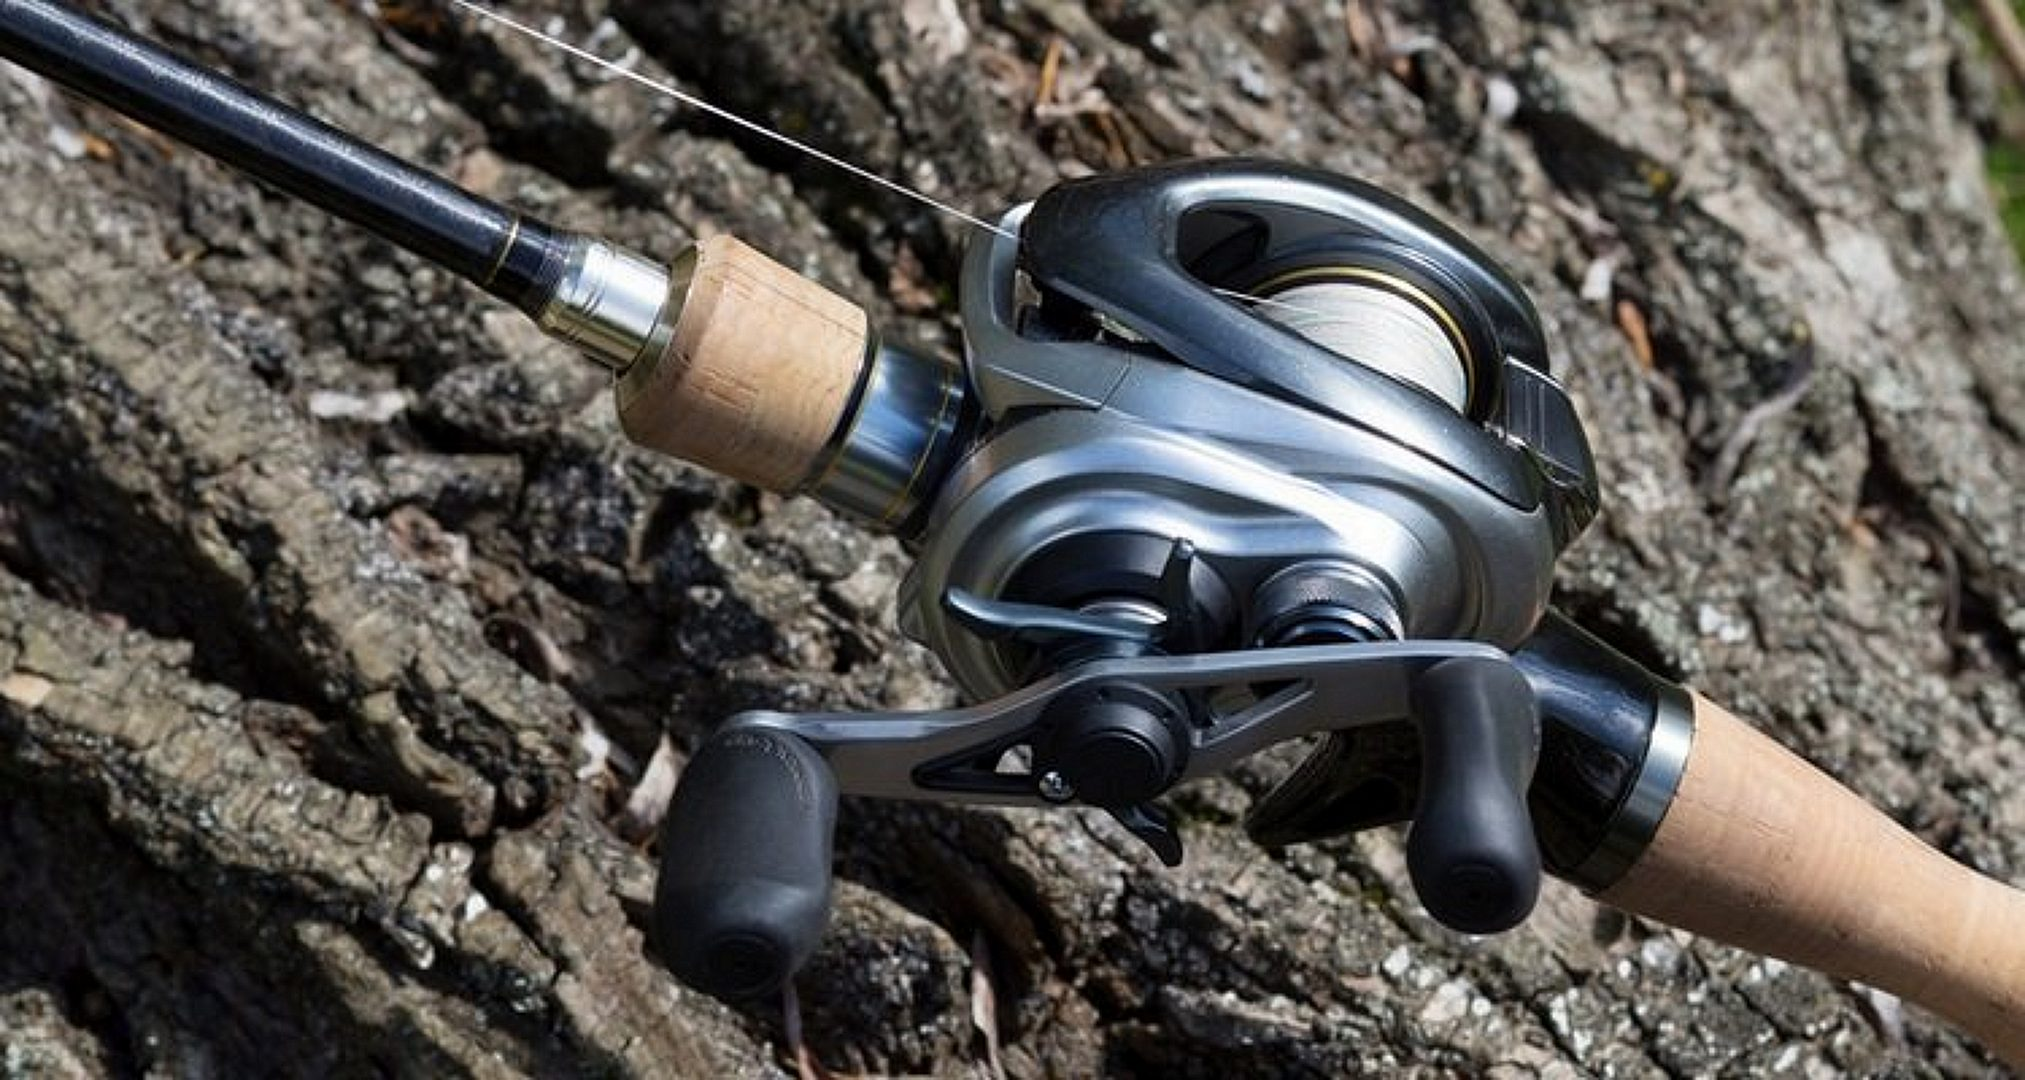 Baitcaster Reel Close Up View